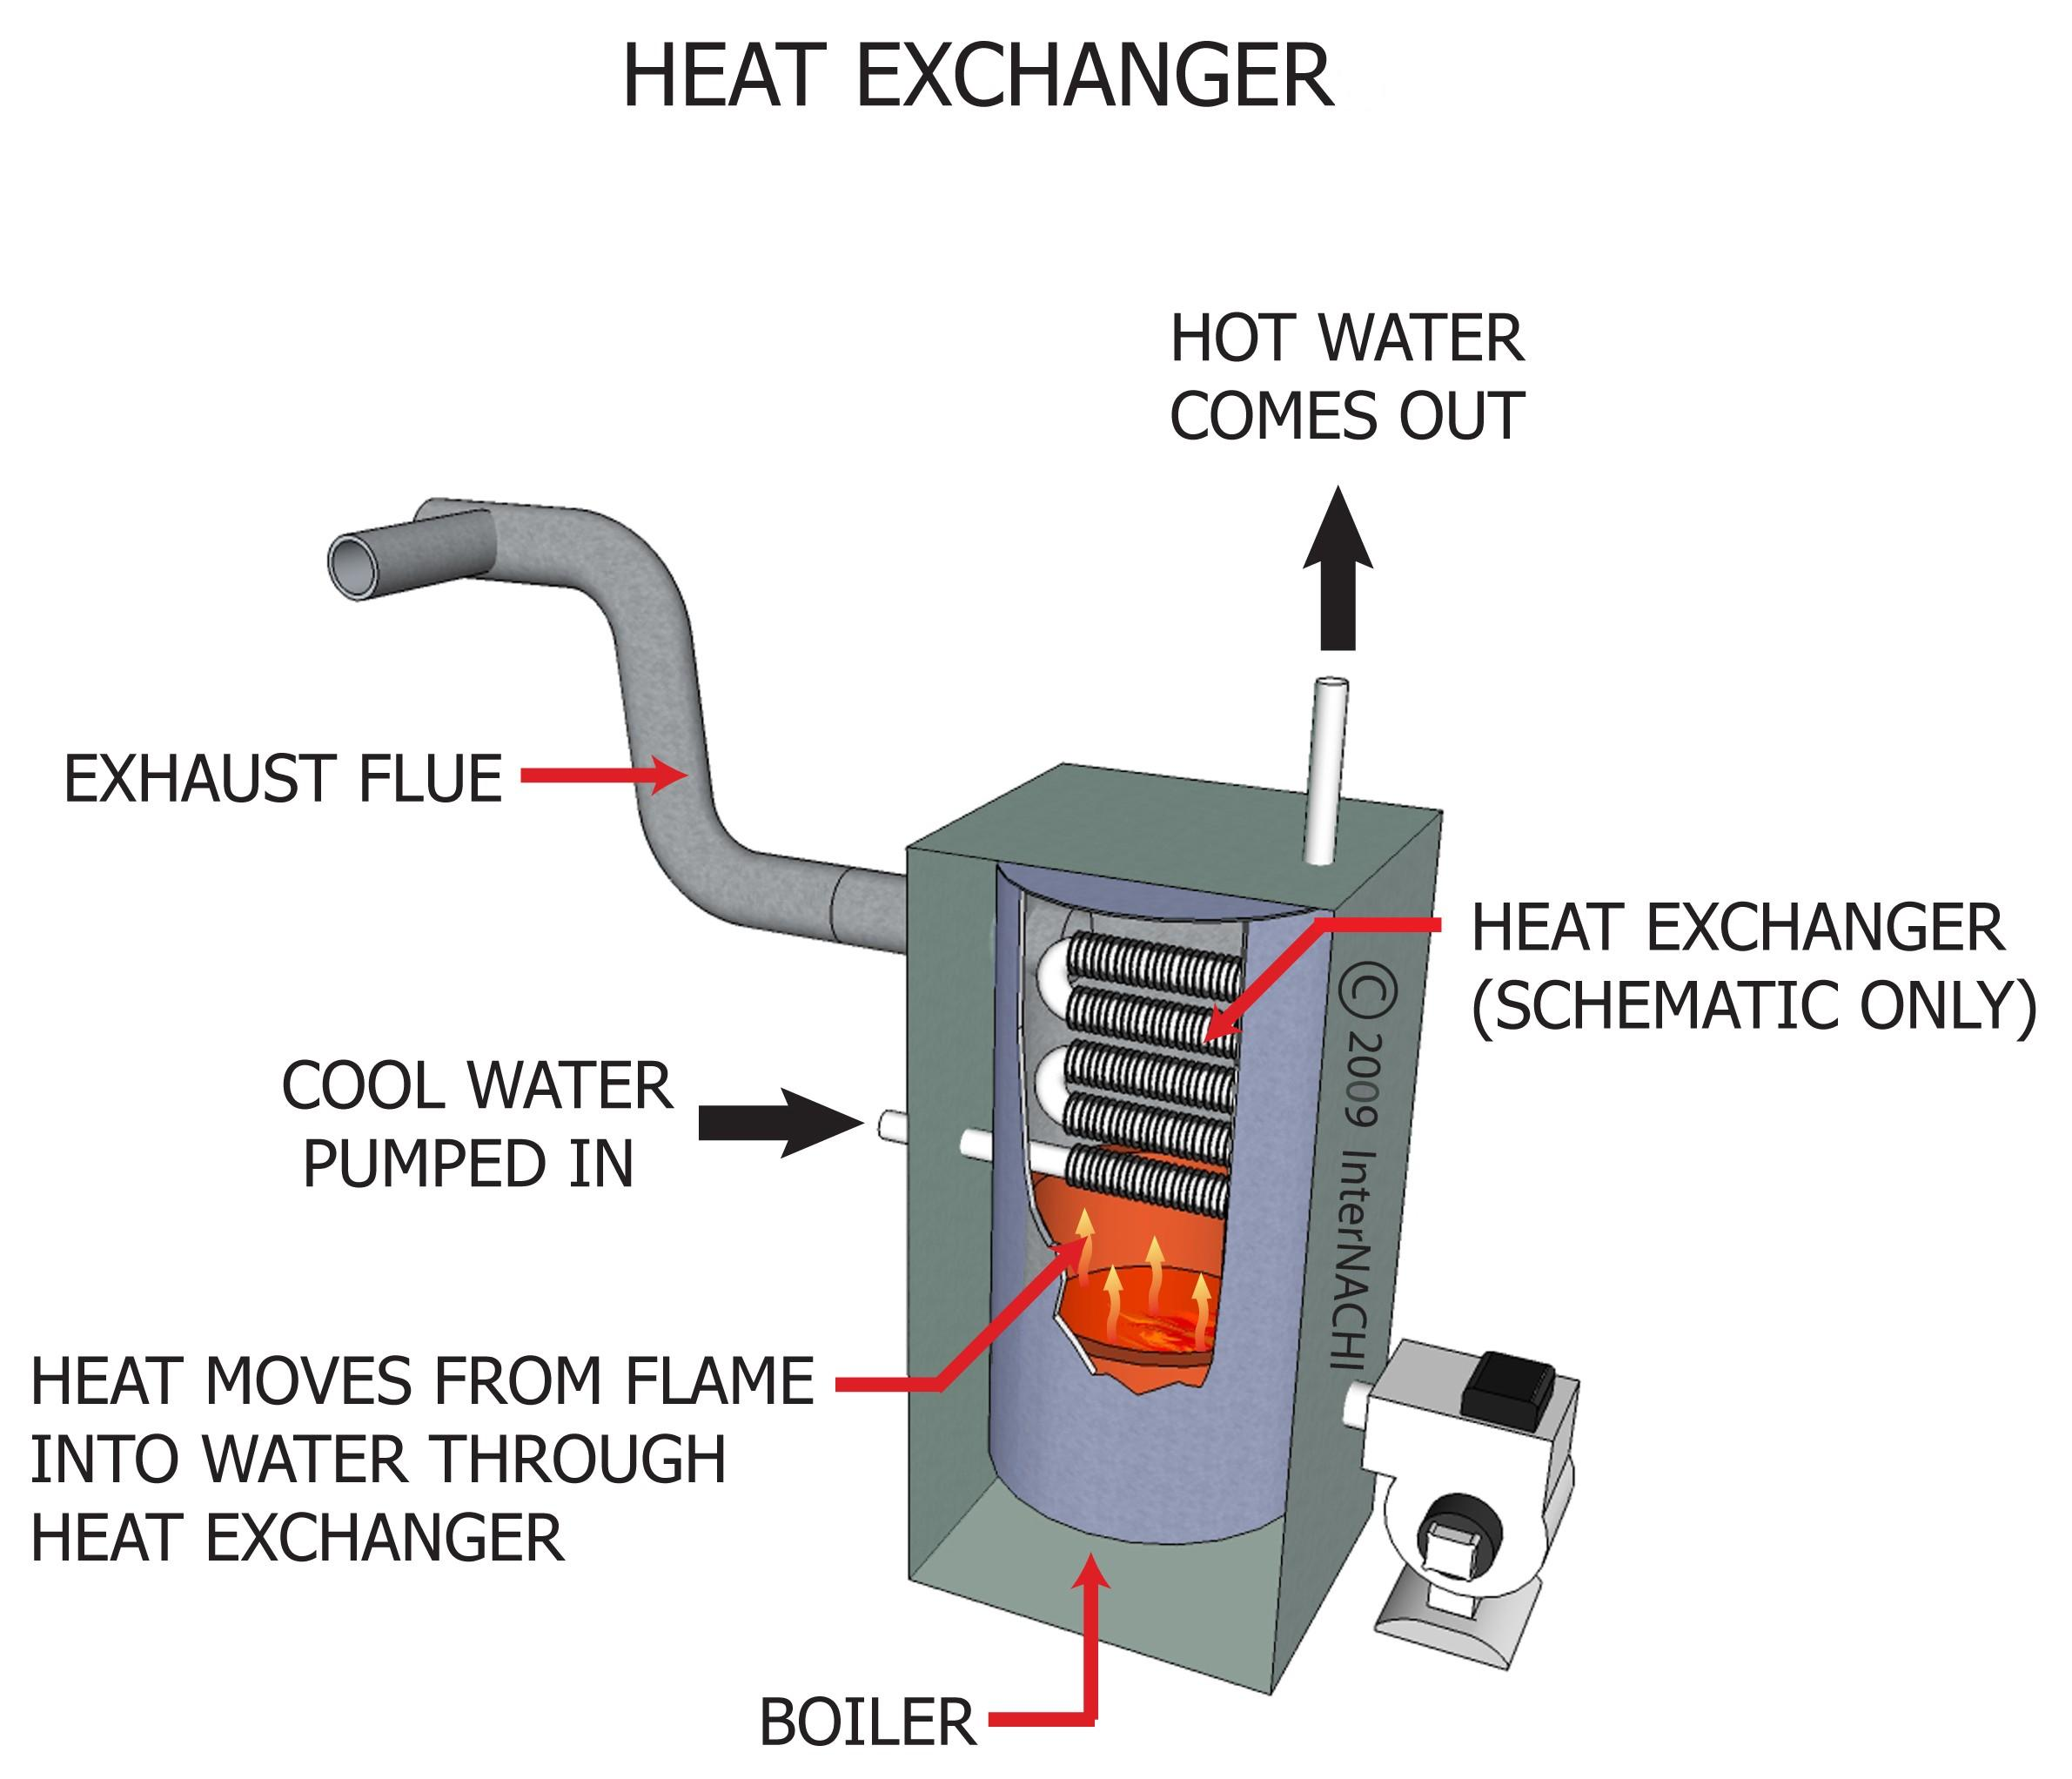 Heat Exchanger For Bryant Furnace Images